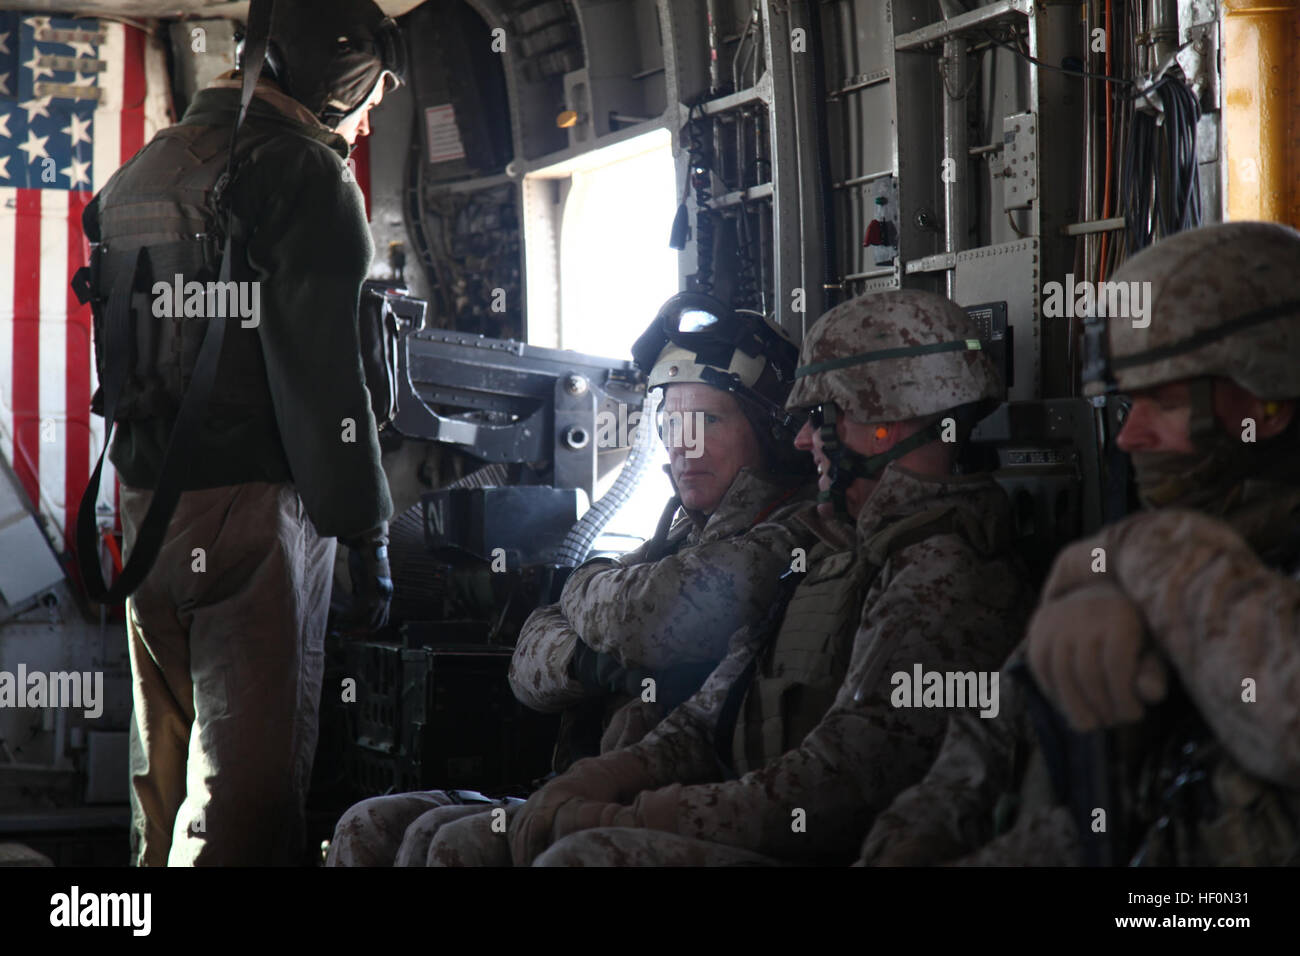 U.S. Marine Corps General James F. Amos, Commandant of the Marine Corps, travels on a CH-53 Delta helicopter in Stock Photo